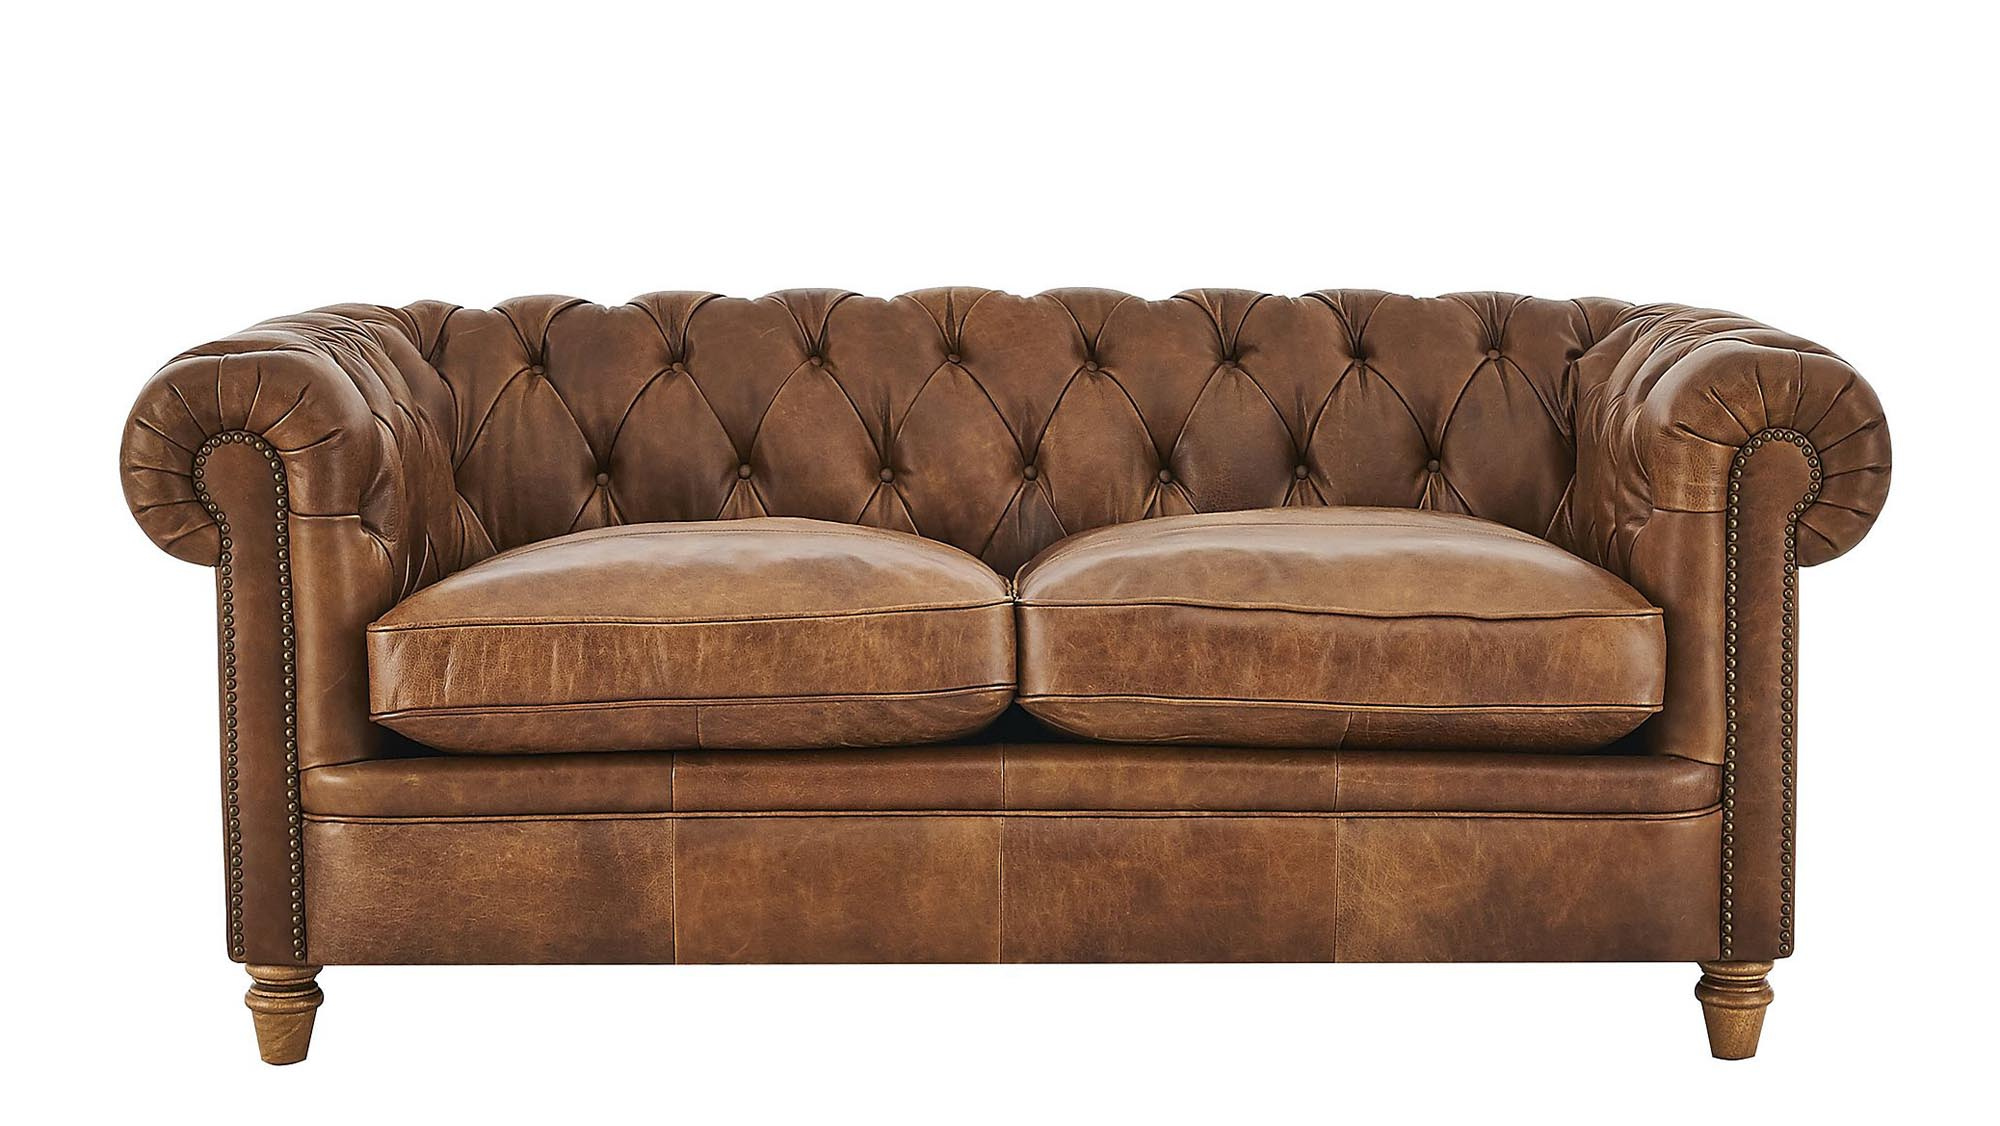 The Iconic Scrolling Arms And Deep Buttoned Back Make This A Timeless  Piece. And While The Classic Chesterfield Often Doesnu0027t Work As A  Two Seater, ...